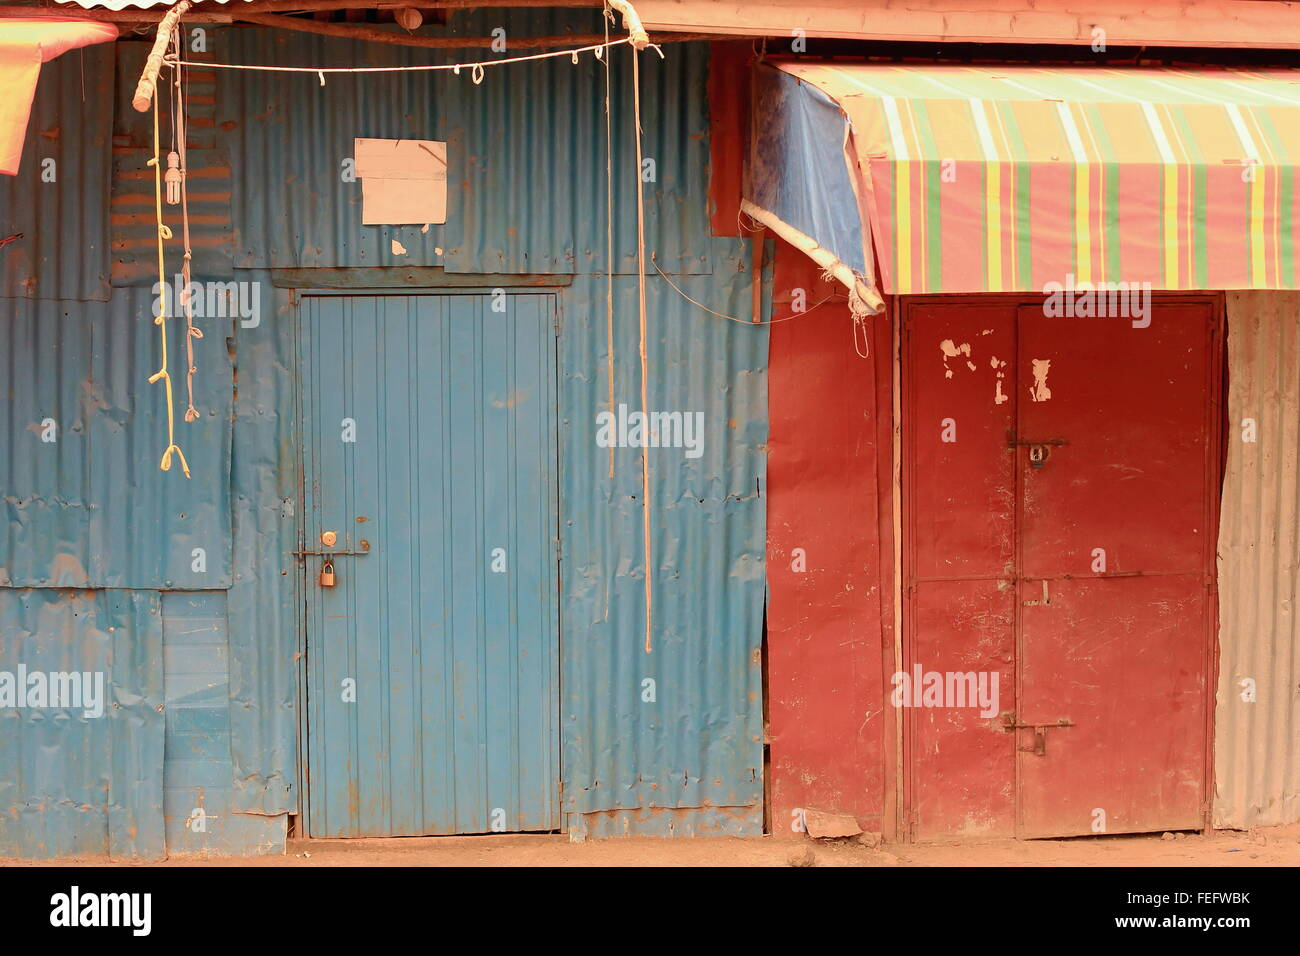 Tin doors painted blue and red of closed shops-area surrounding the Gebriel Bete-St.Gabriel christian church-Kombolcha-Ethiopia. & Tin doors painted blue and red of closed shops-area surrounding the ...